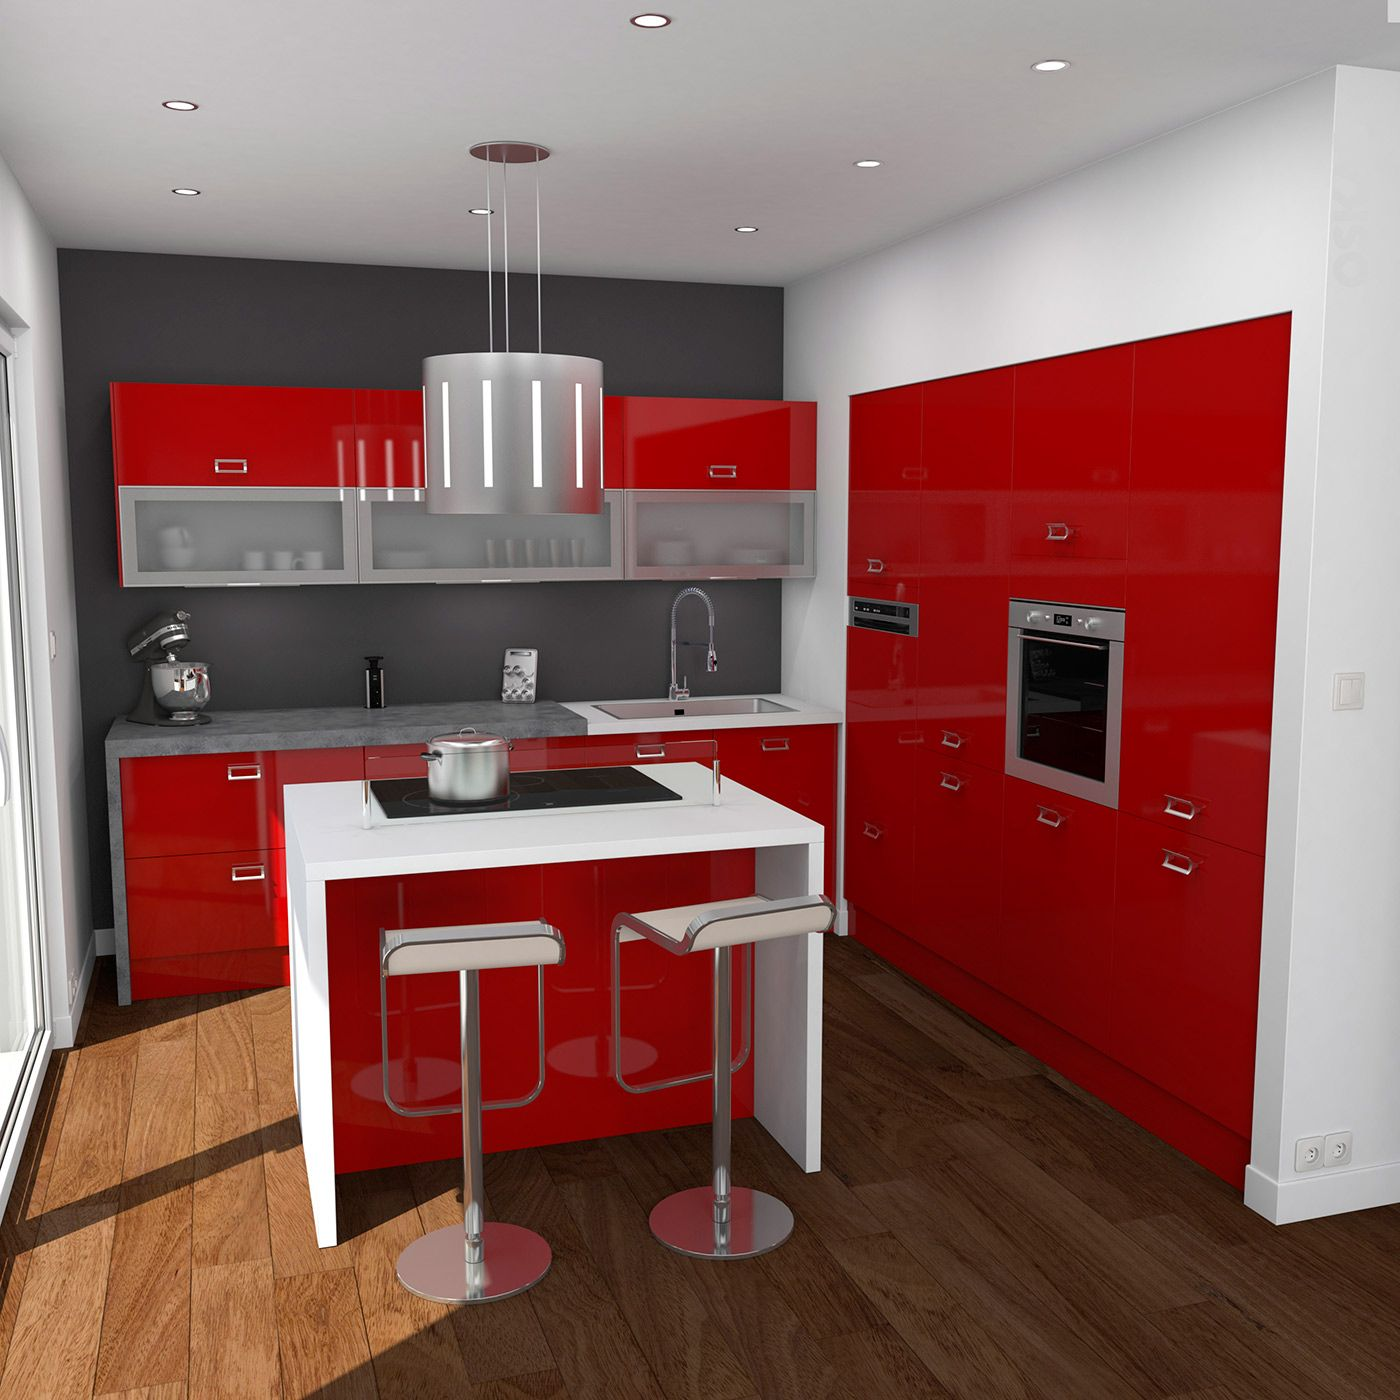 Cuisine rouge moderne finition brillante implantation en for Modele cuisine encastrable